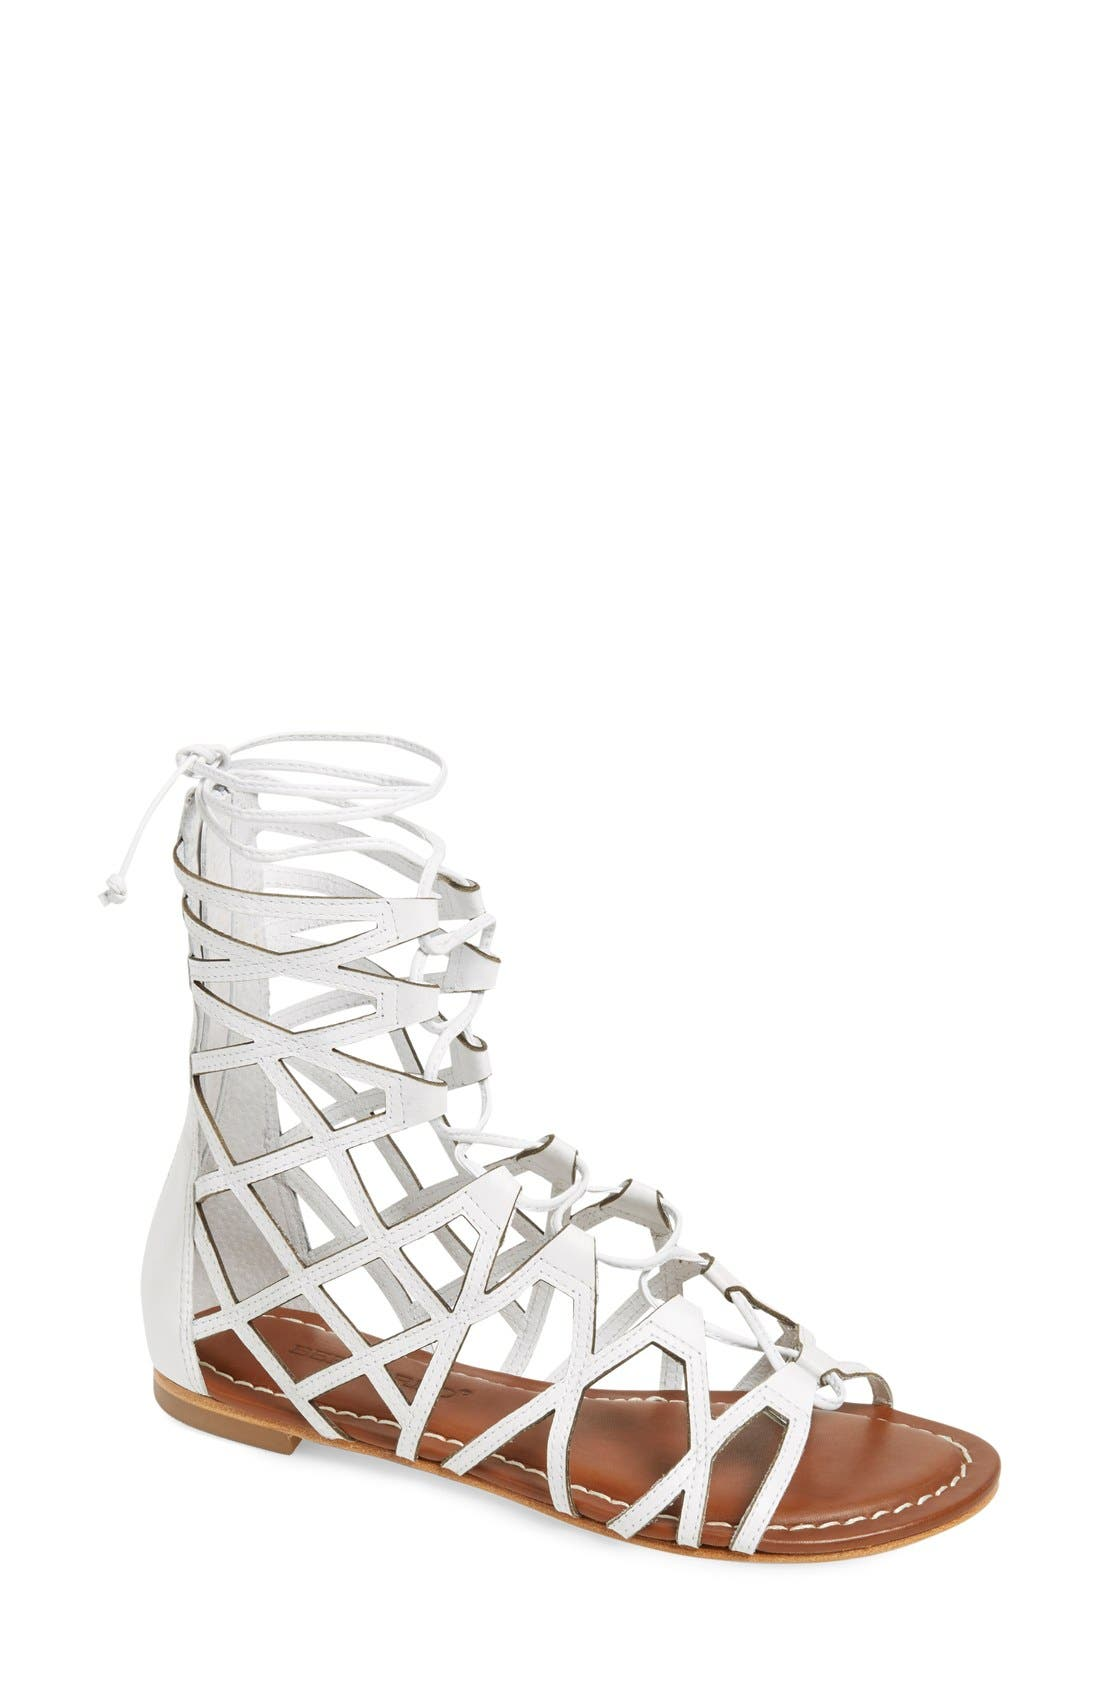 Alternate Image 1 Selected - Bernardo Willow Gladiator Sandal (Women)